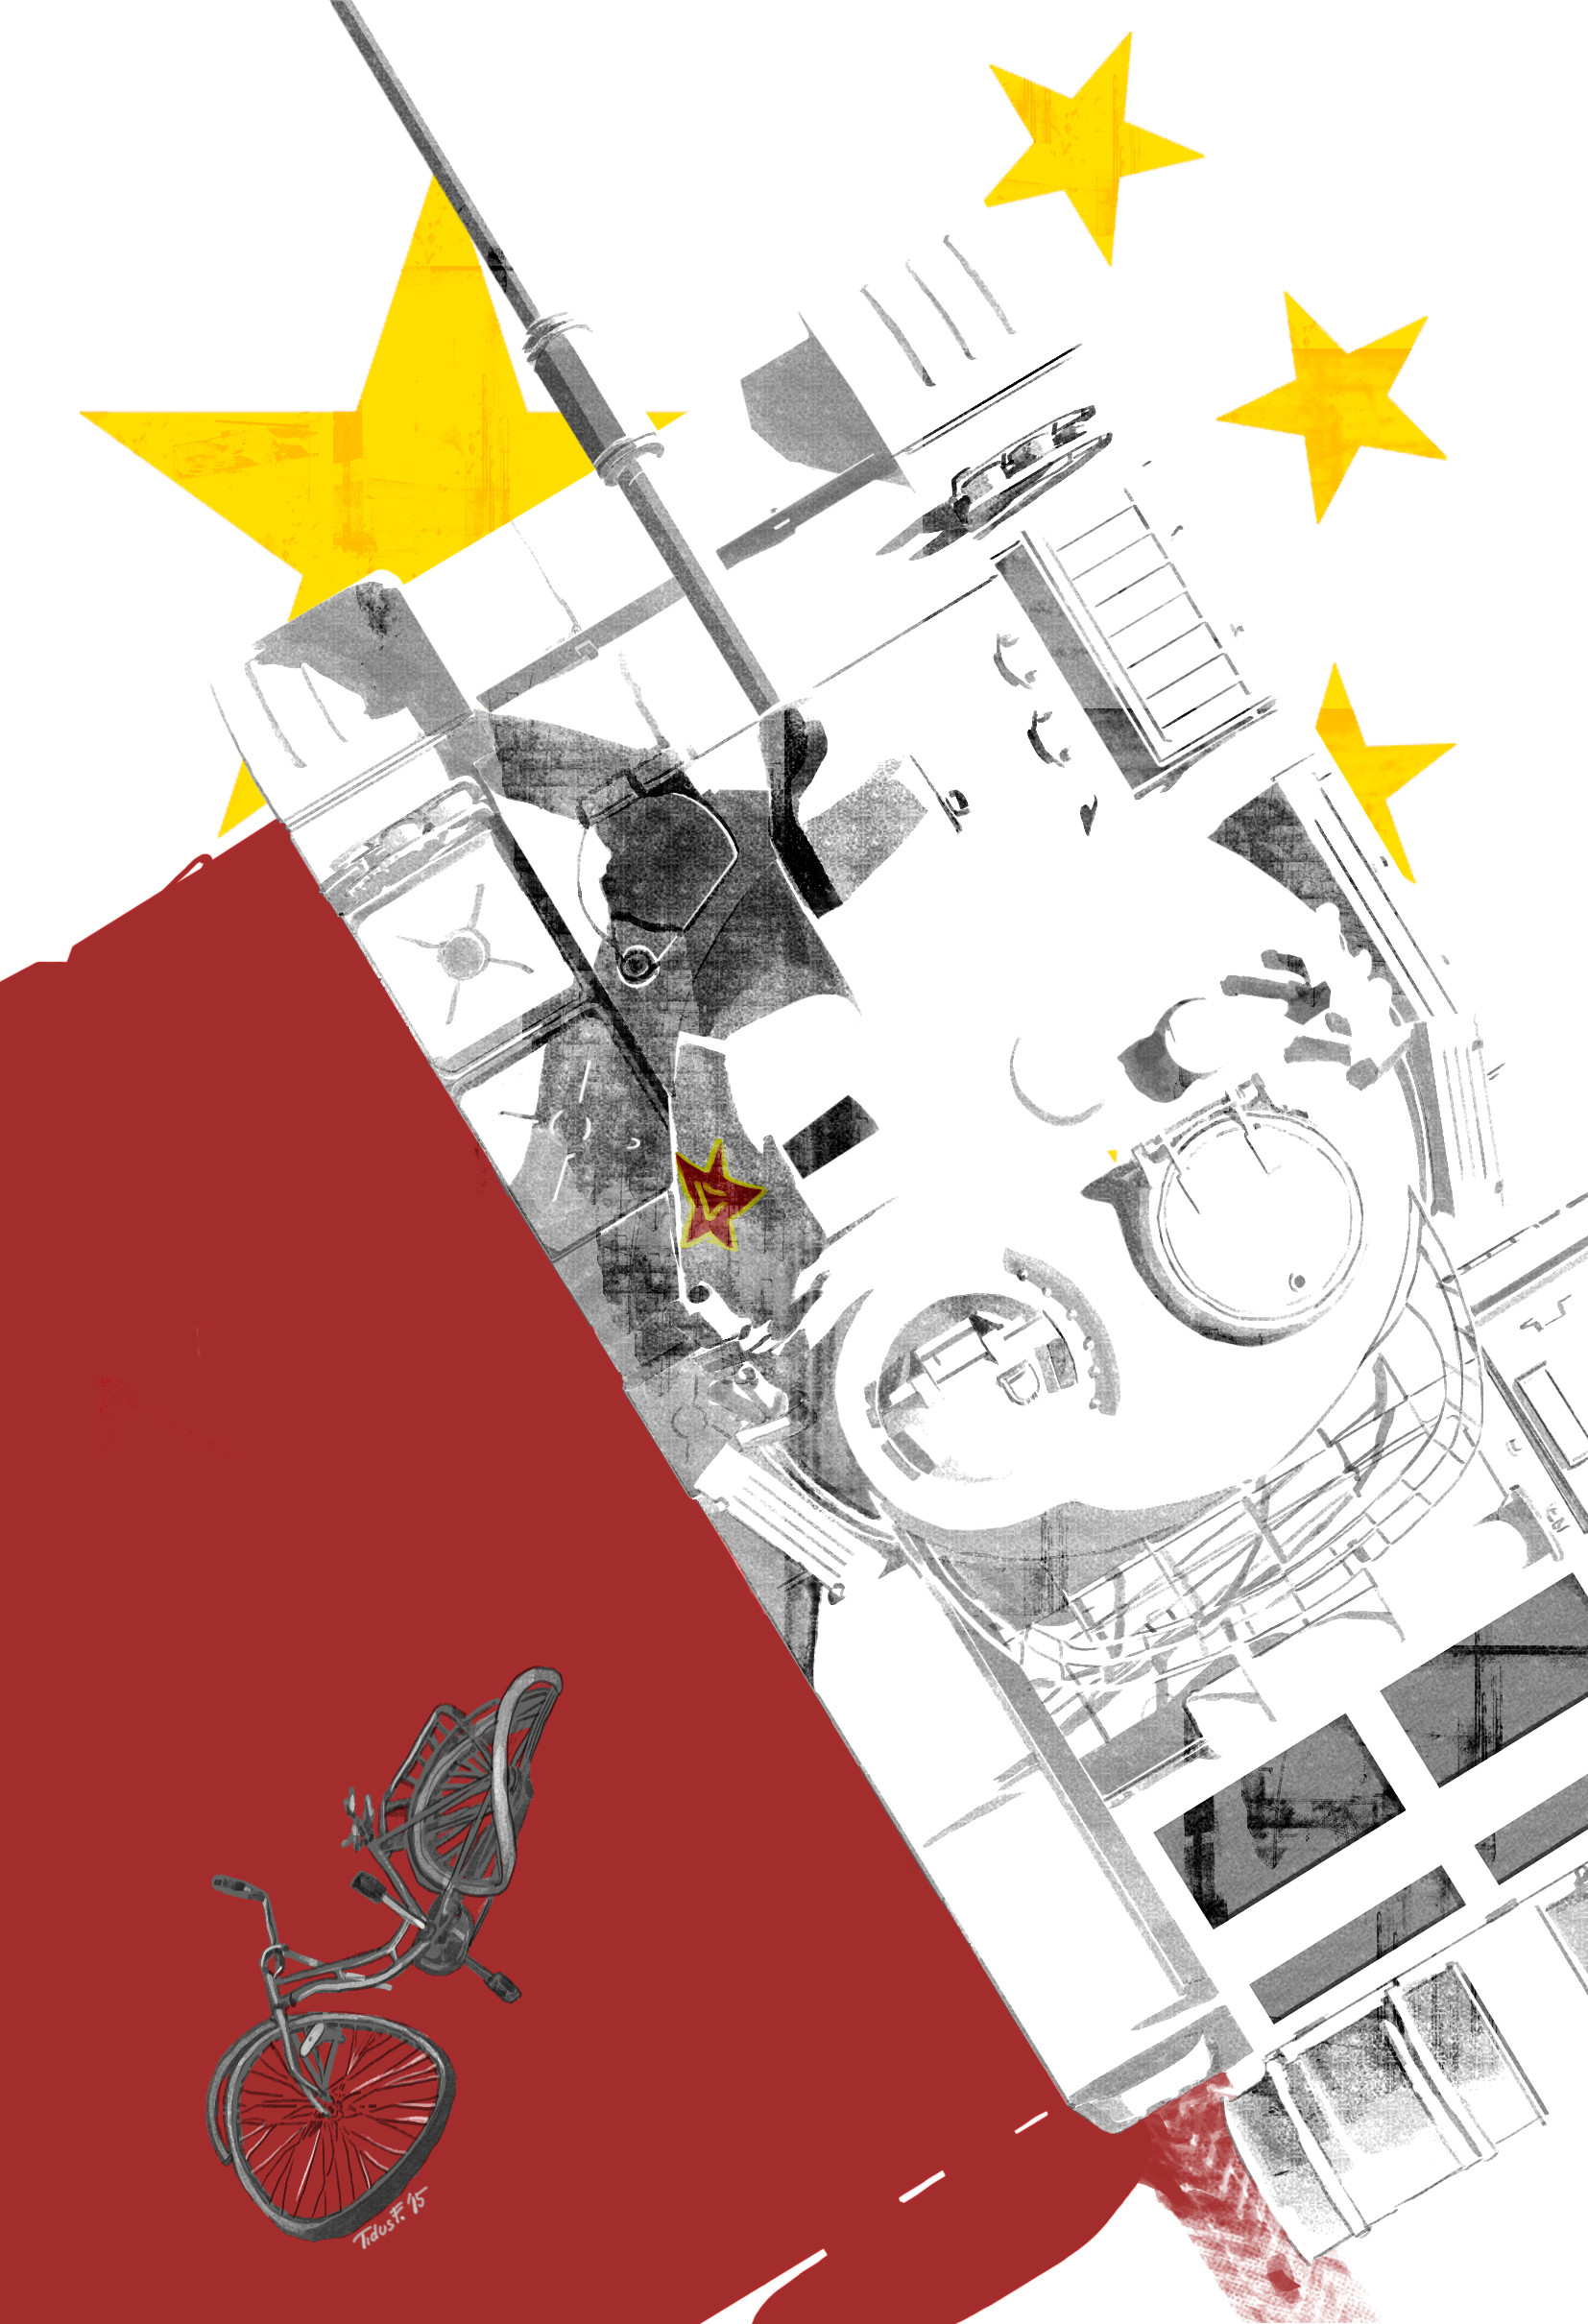 ArtStation - China: Fragile Superpower: How China's Internal Politics Could  Derail Its Peaceful Rise • Susan Shirk, Tidus Fair Supertramp